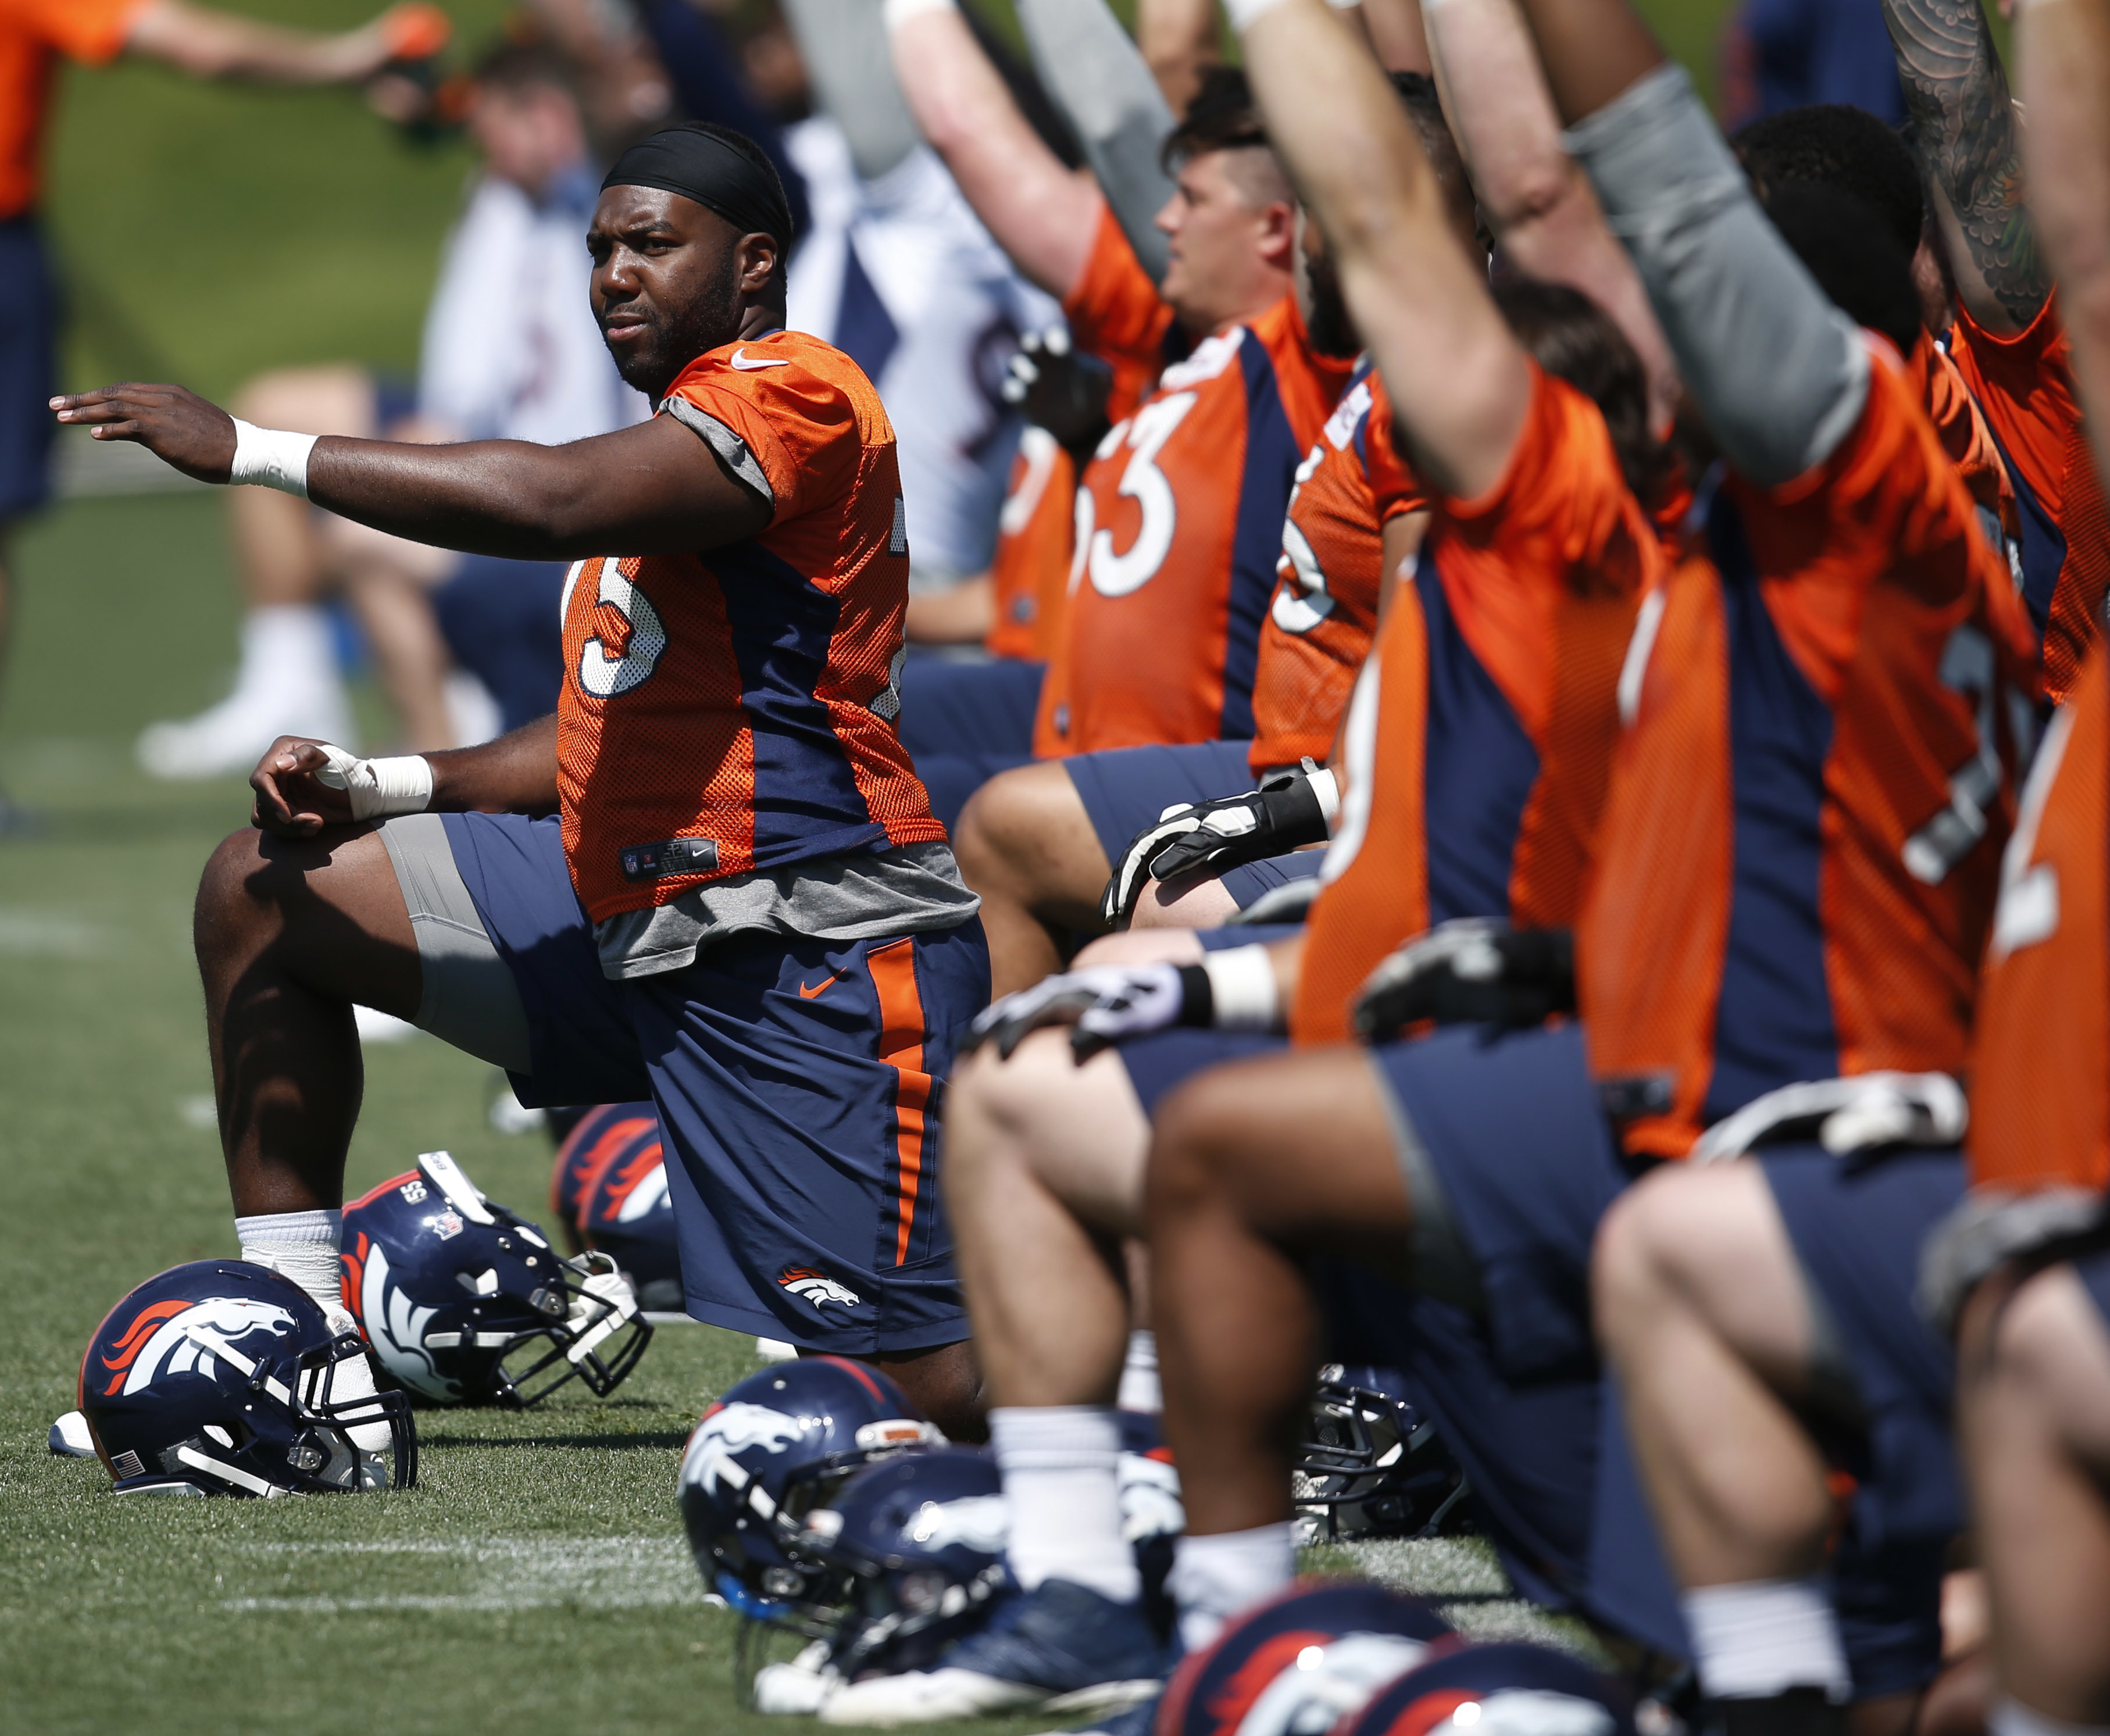 Denver Broncos tackle Russell Okung, left, stretches with teammates during an NFL football practice at the team's headquarters Wednesday, June 8, 2016, in Englewood, Colo. (AP Photo/David Zalubowski)